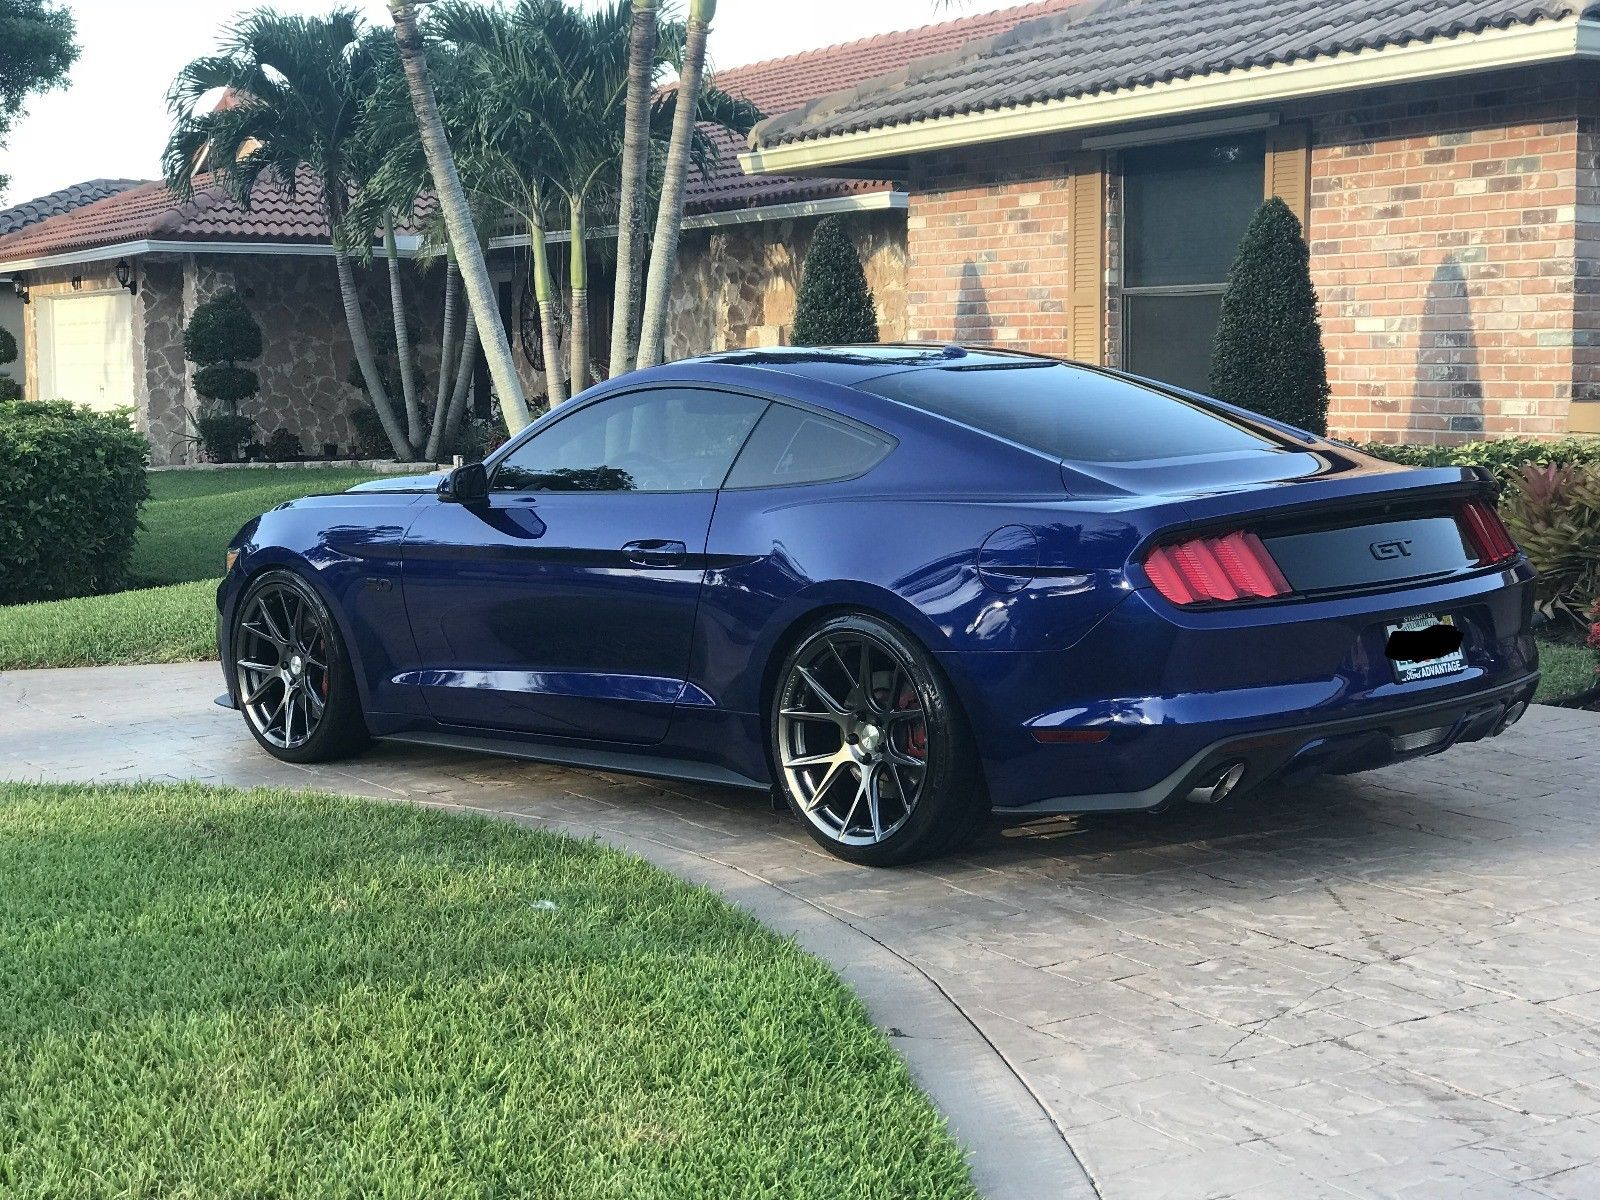 2016 Honda Accord Sport For Sale >> 2016 Ford Mustang GT Premium 2016 FORD MUSTANG GT 5.0 with ...